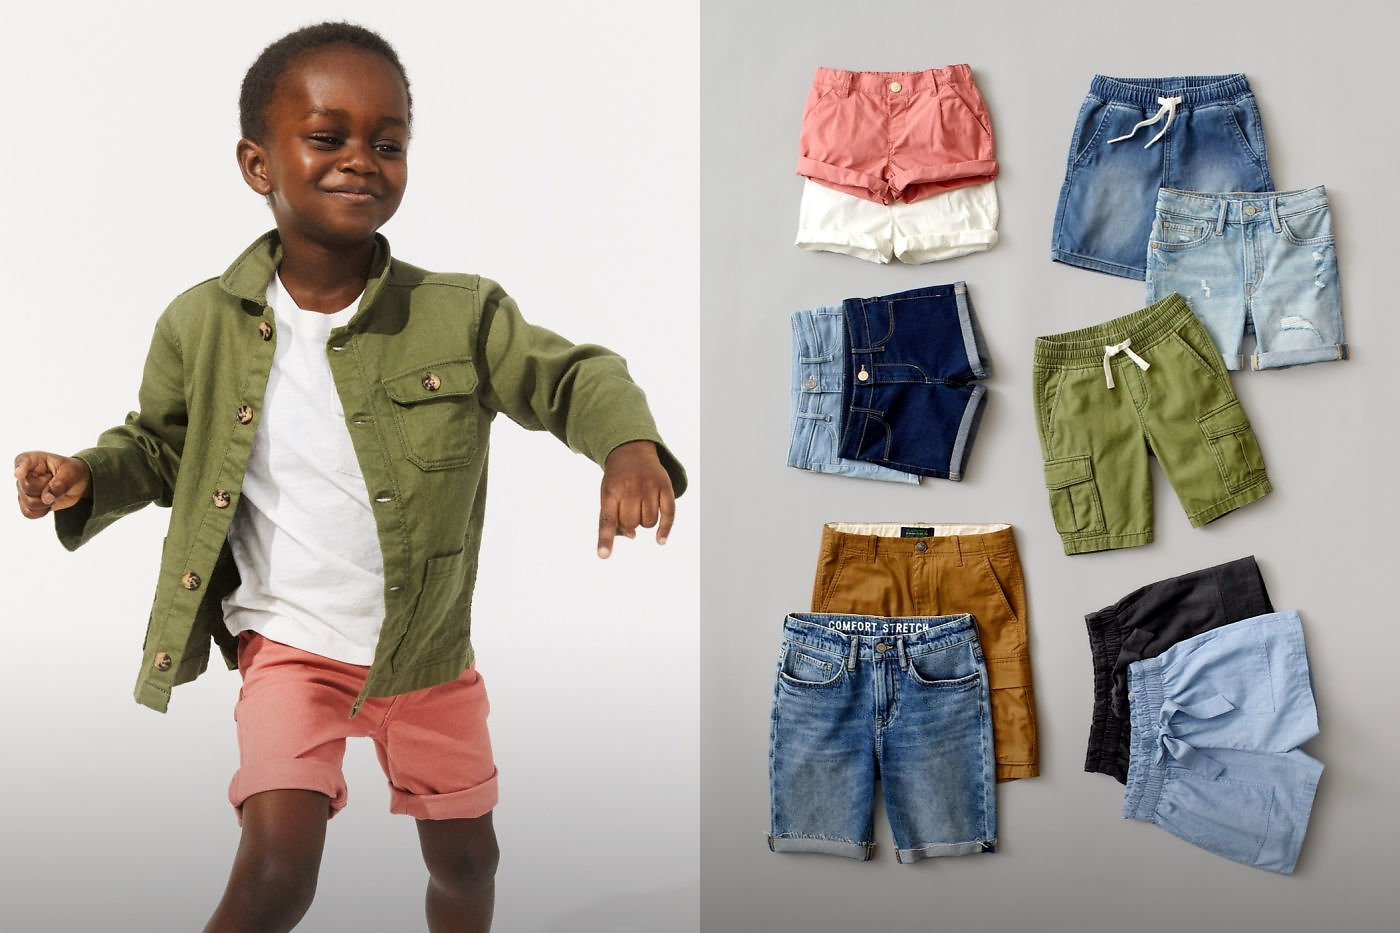 Kids' Tops & Shorts from $4.99! H&M